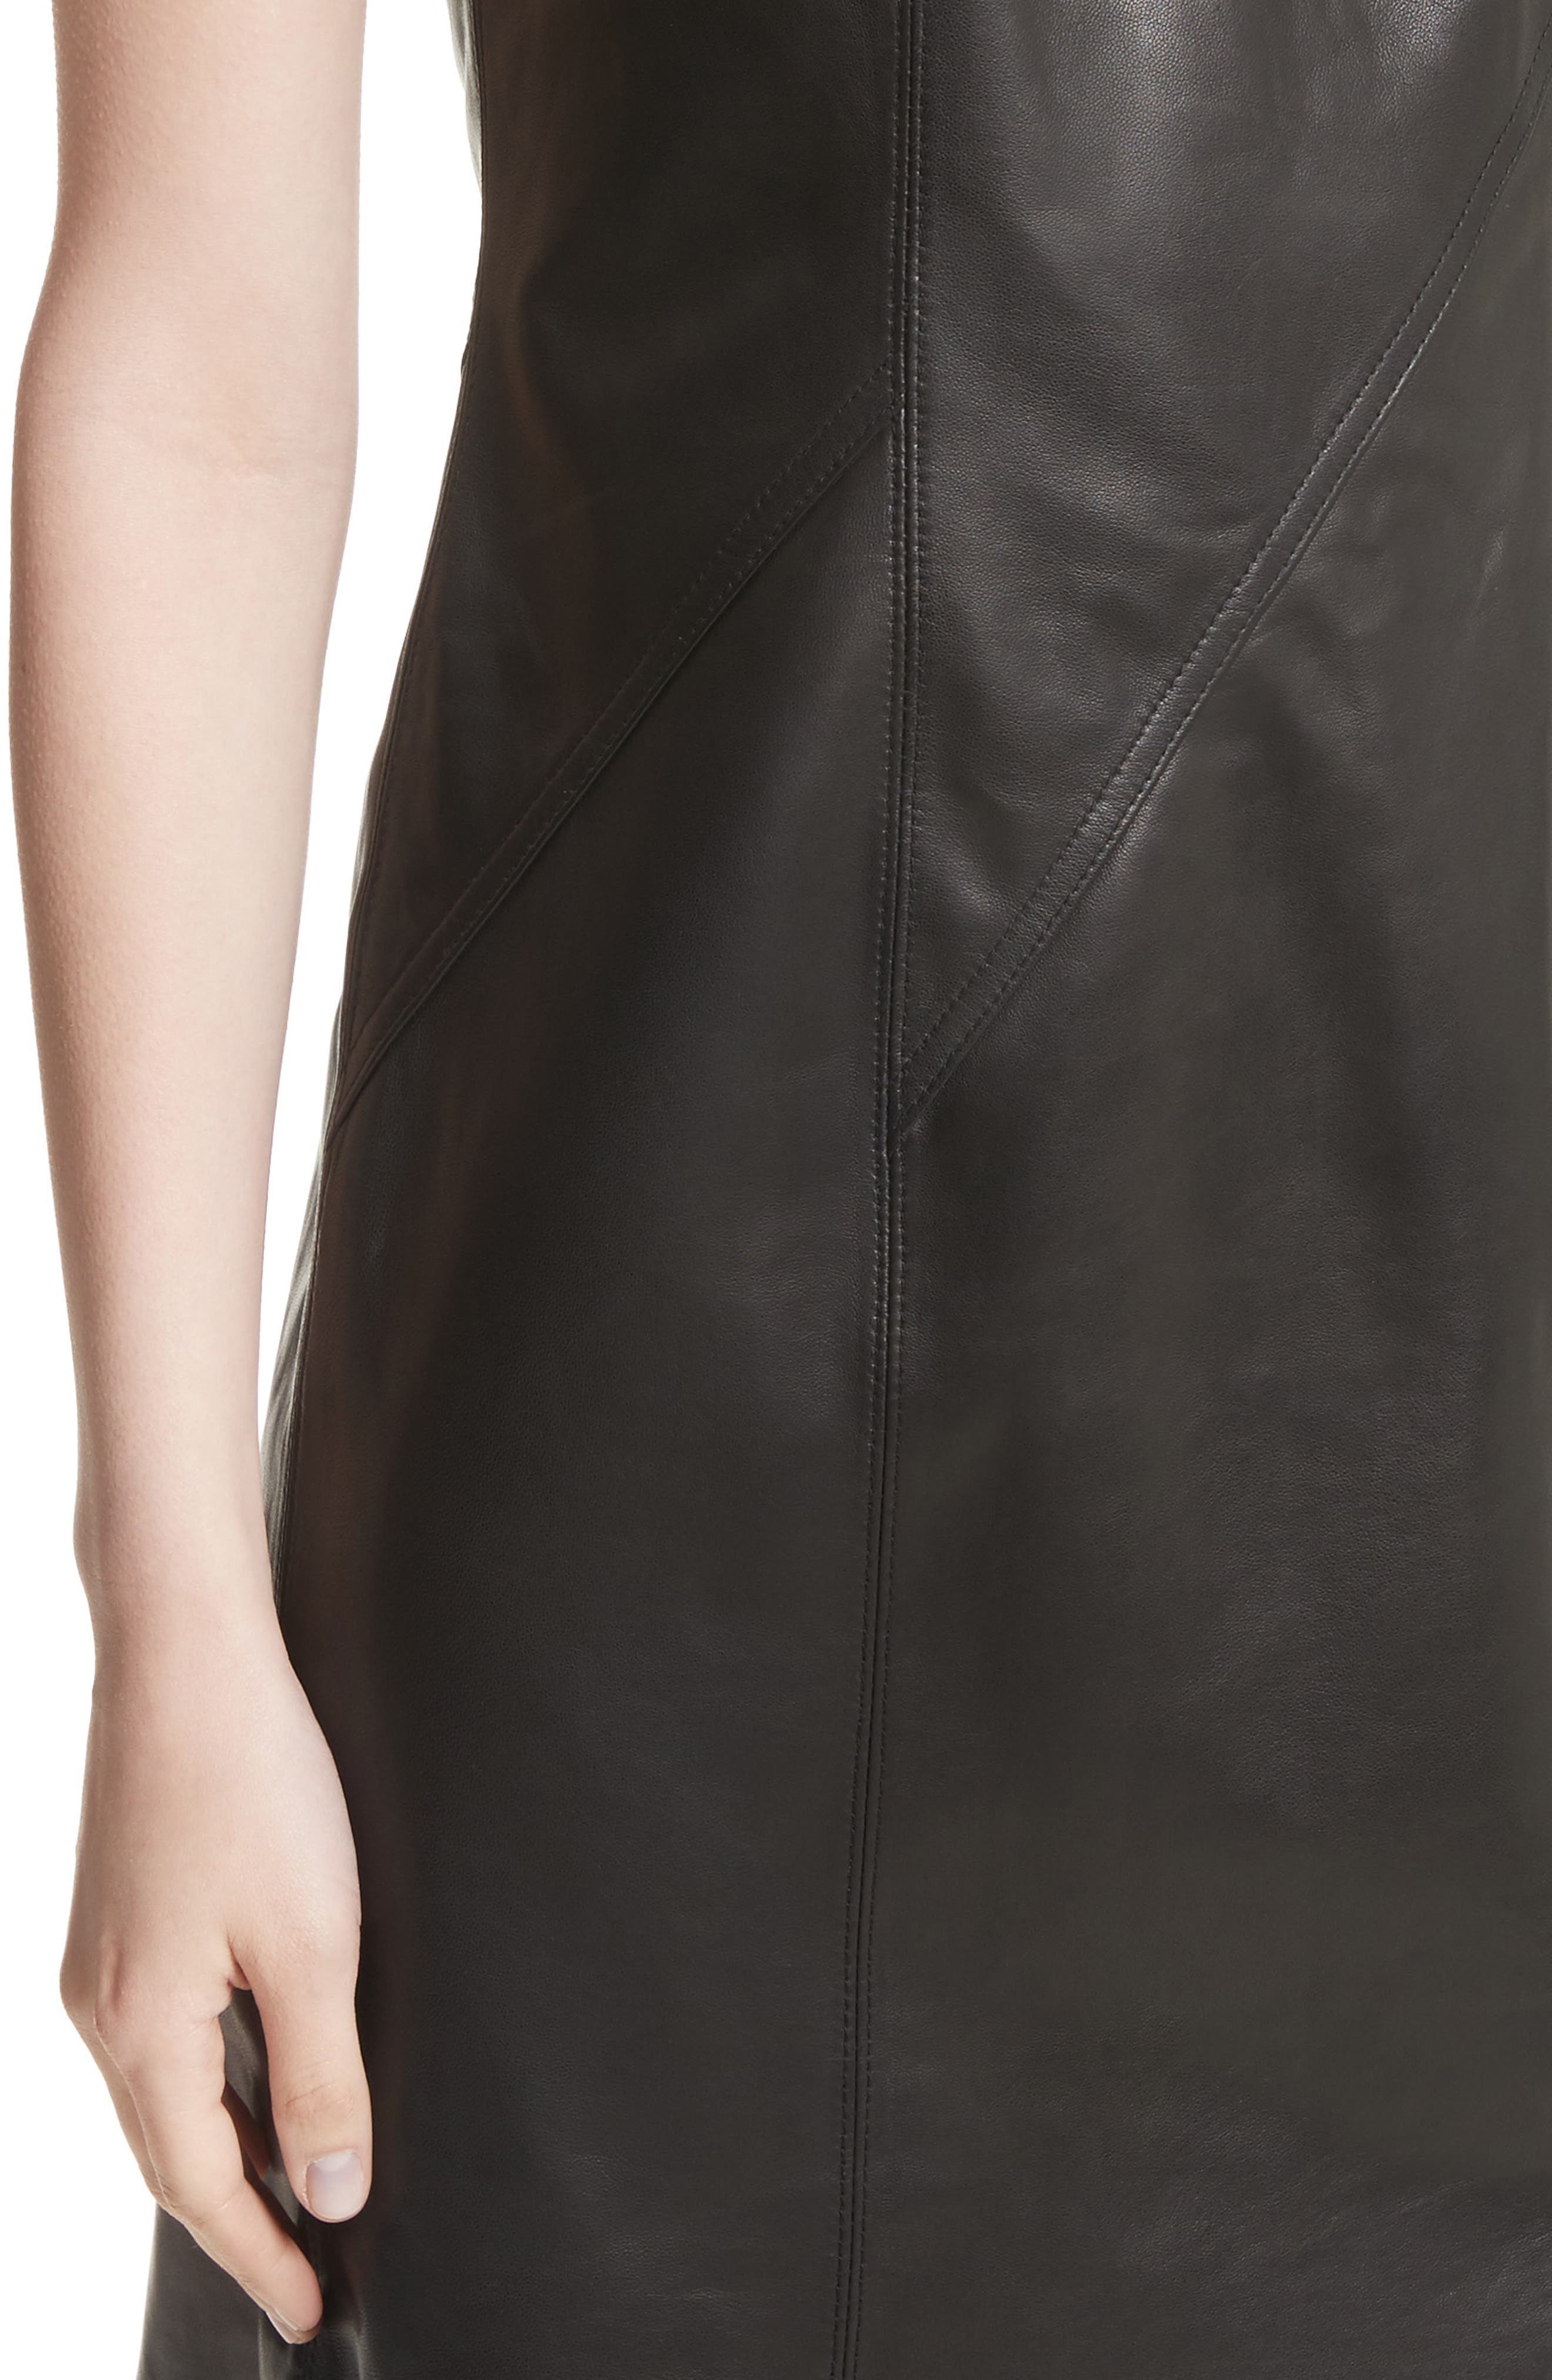 Loxley Leather Dress,                             Alternate thumbnail 4, color,                             Black